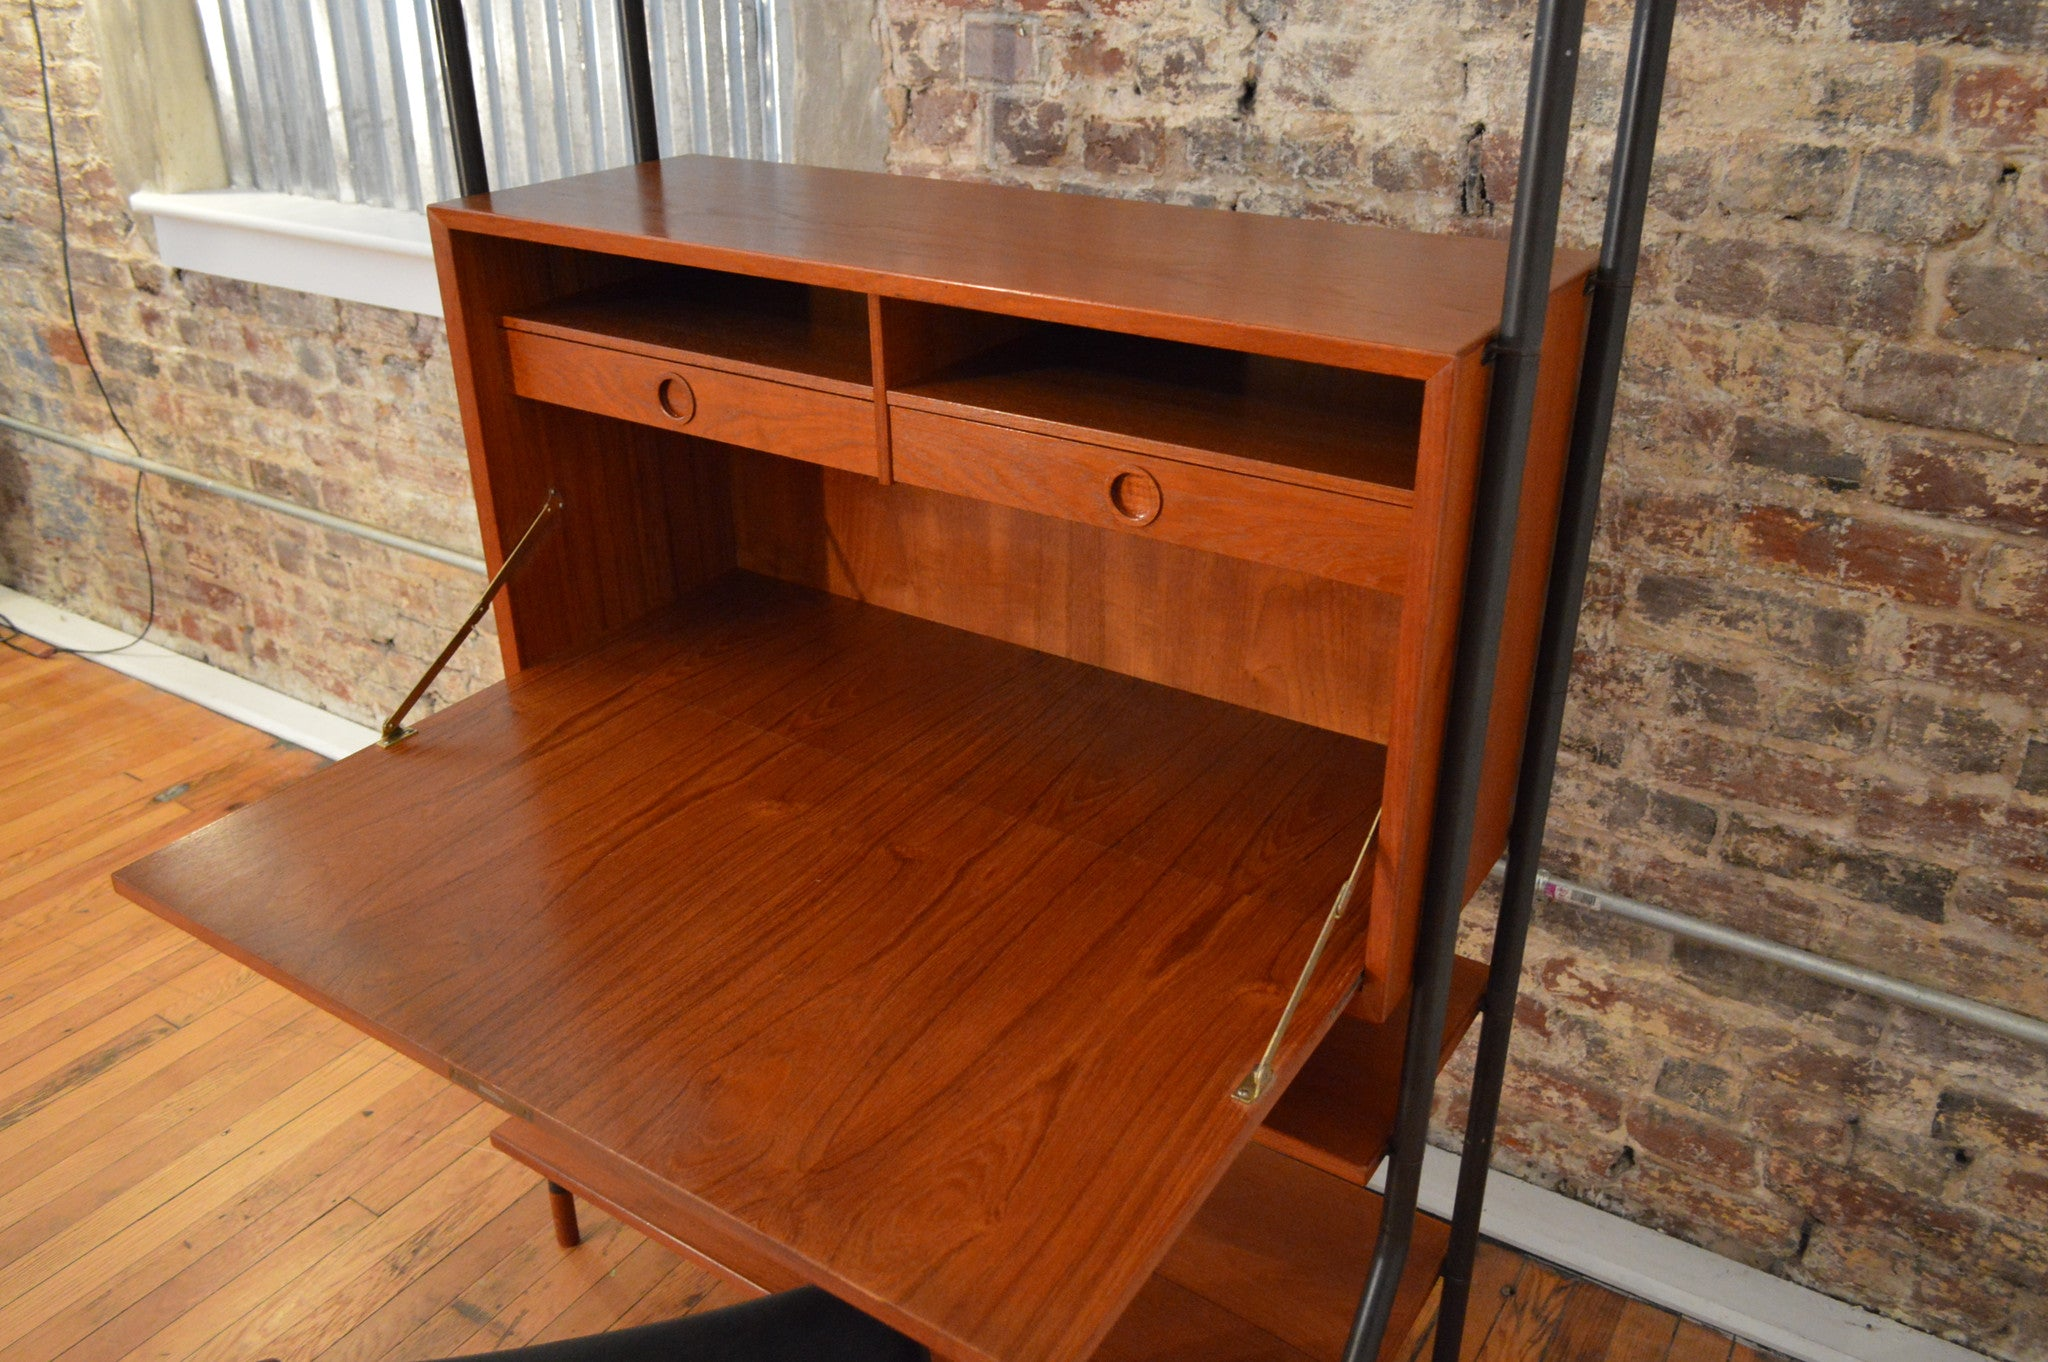 denmark teak drop desk secretary dropfront mid century office midcentury furniture danish eames writing front galaxiemodern scandinavian products